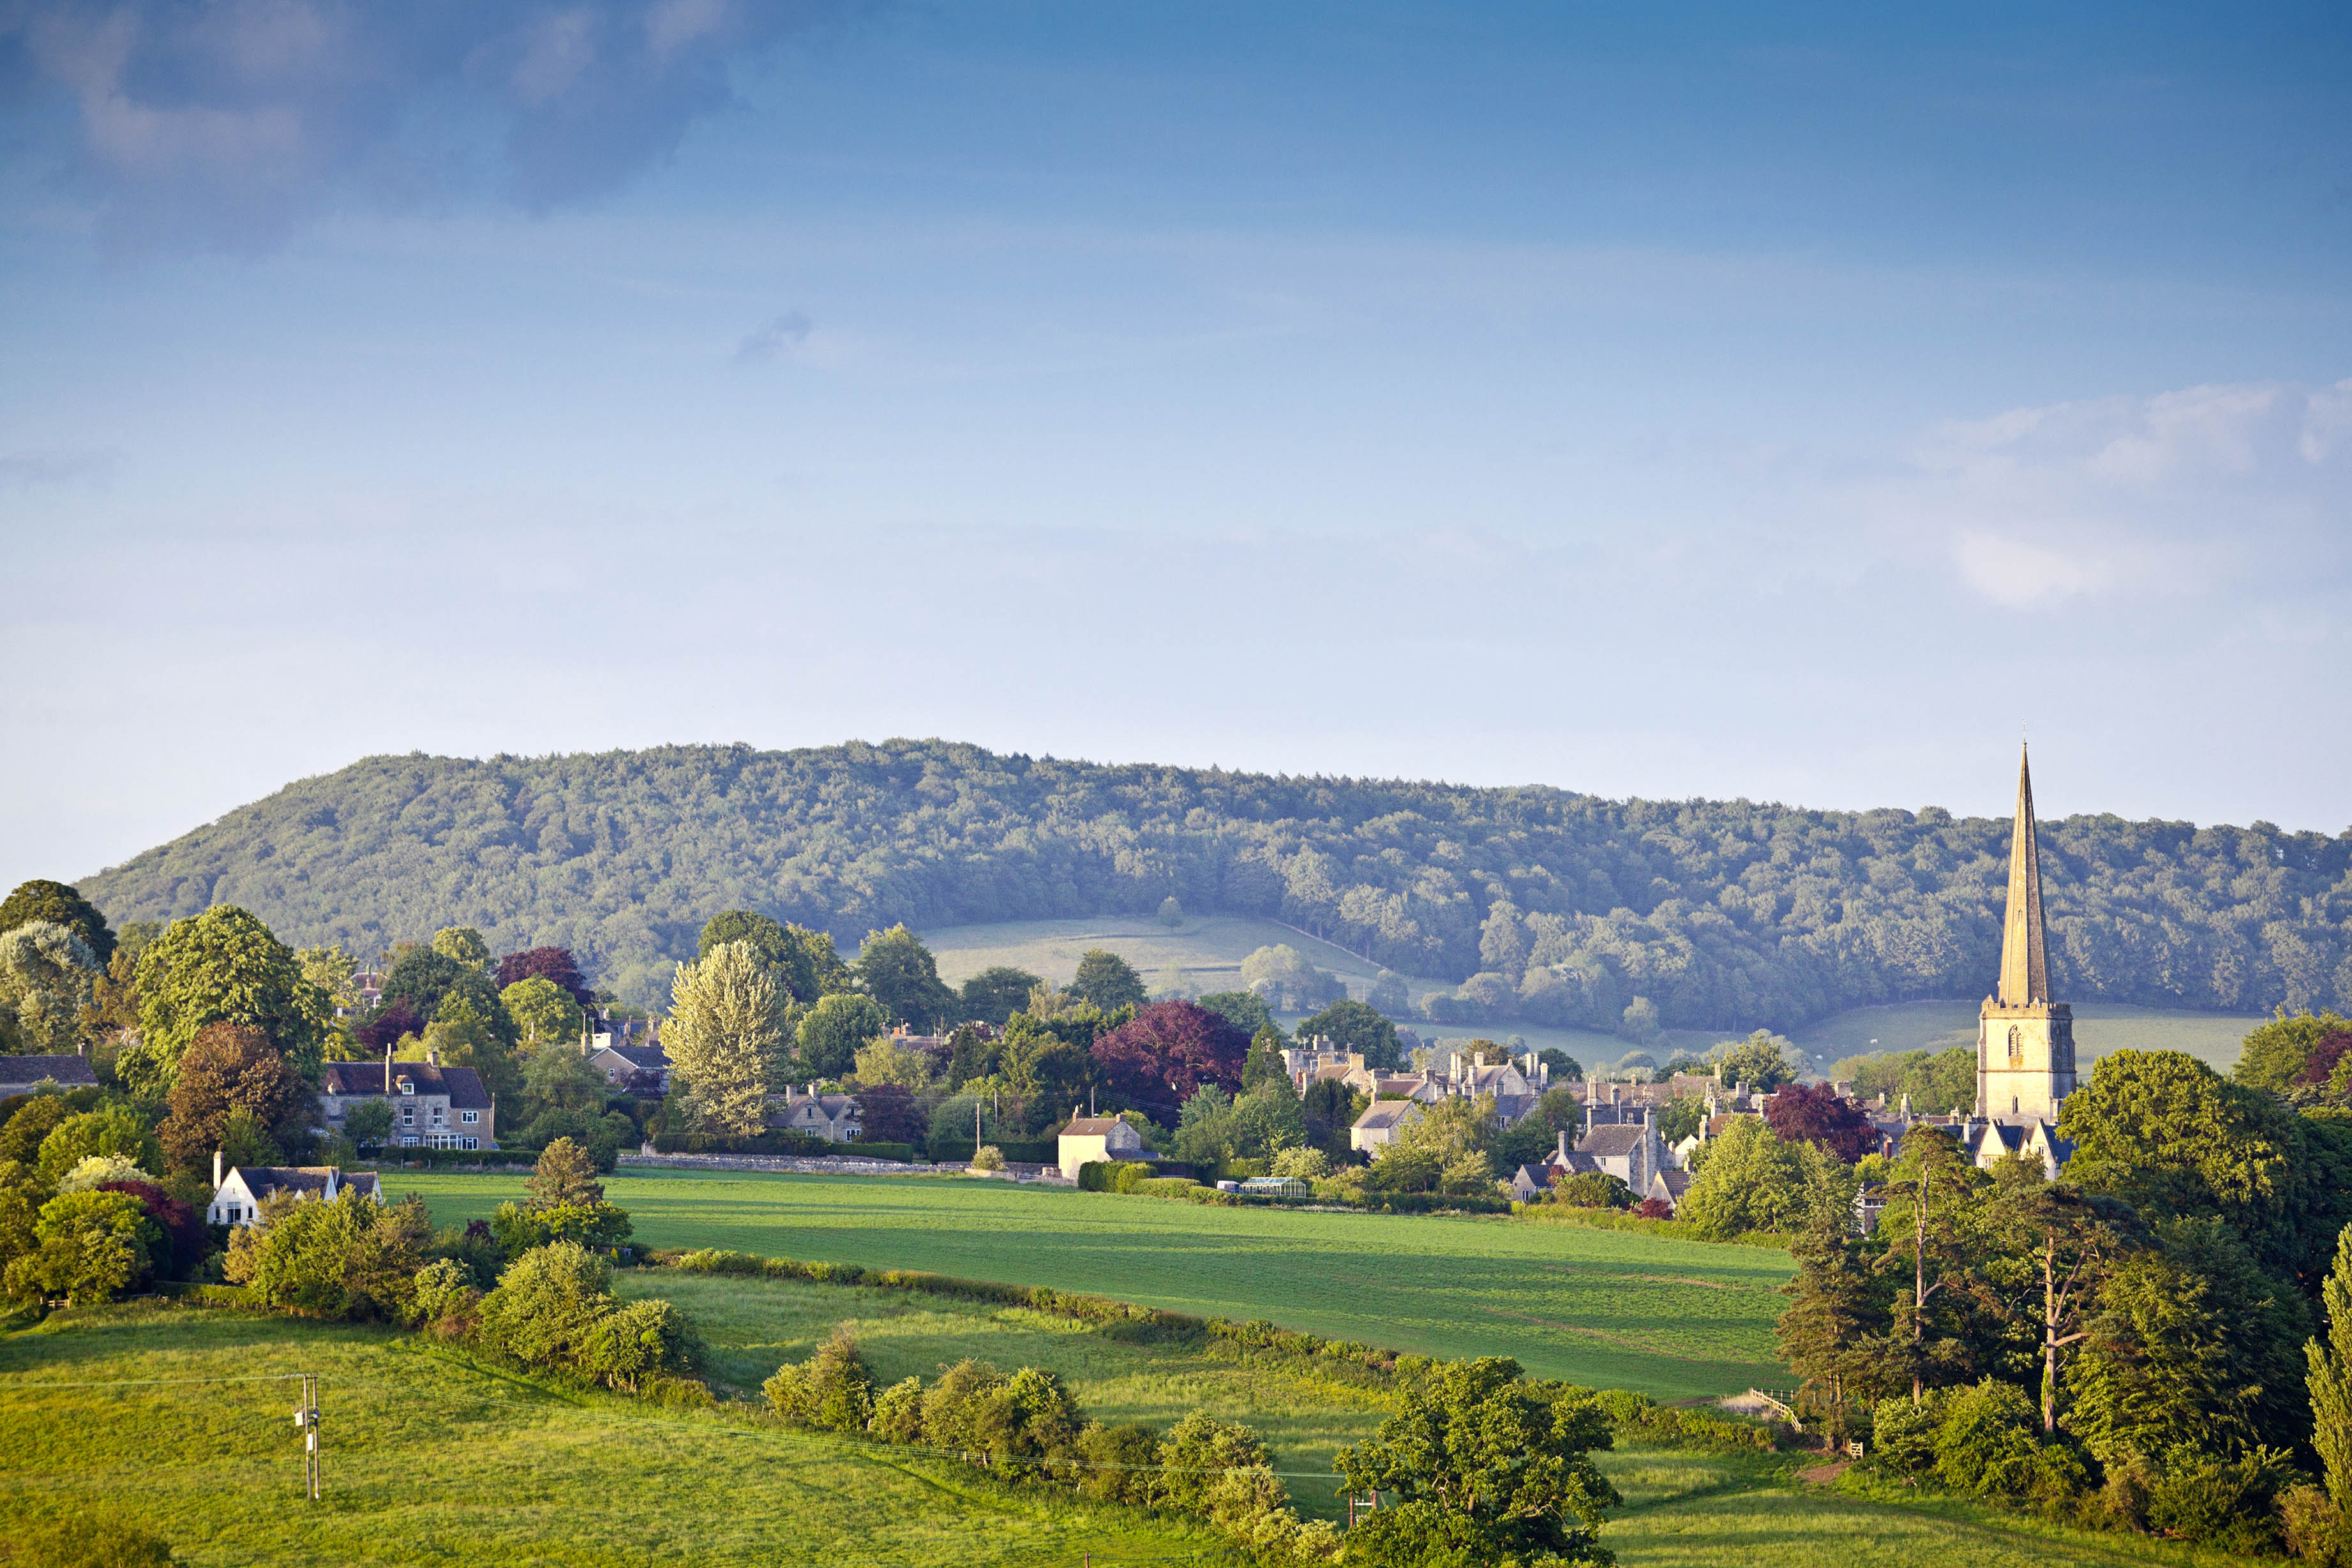 Central cotswolds